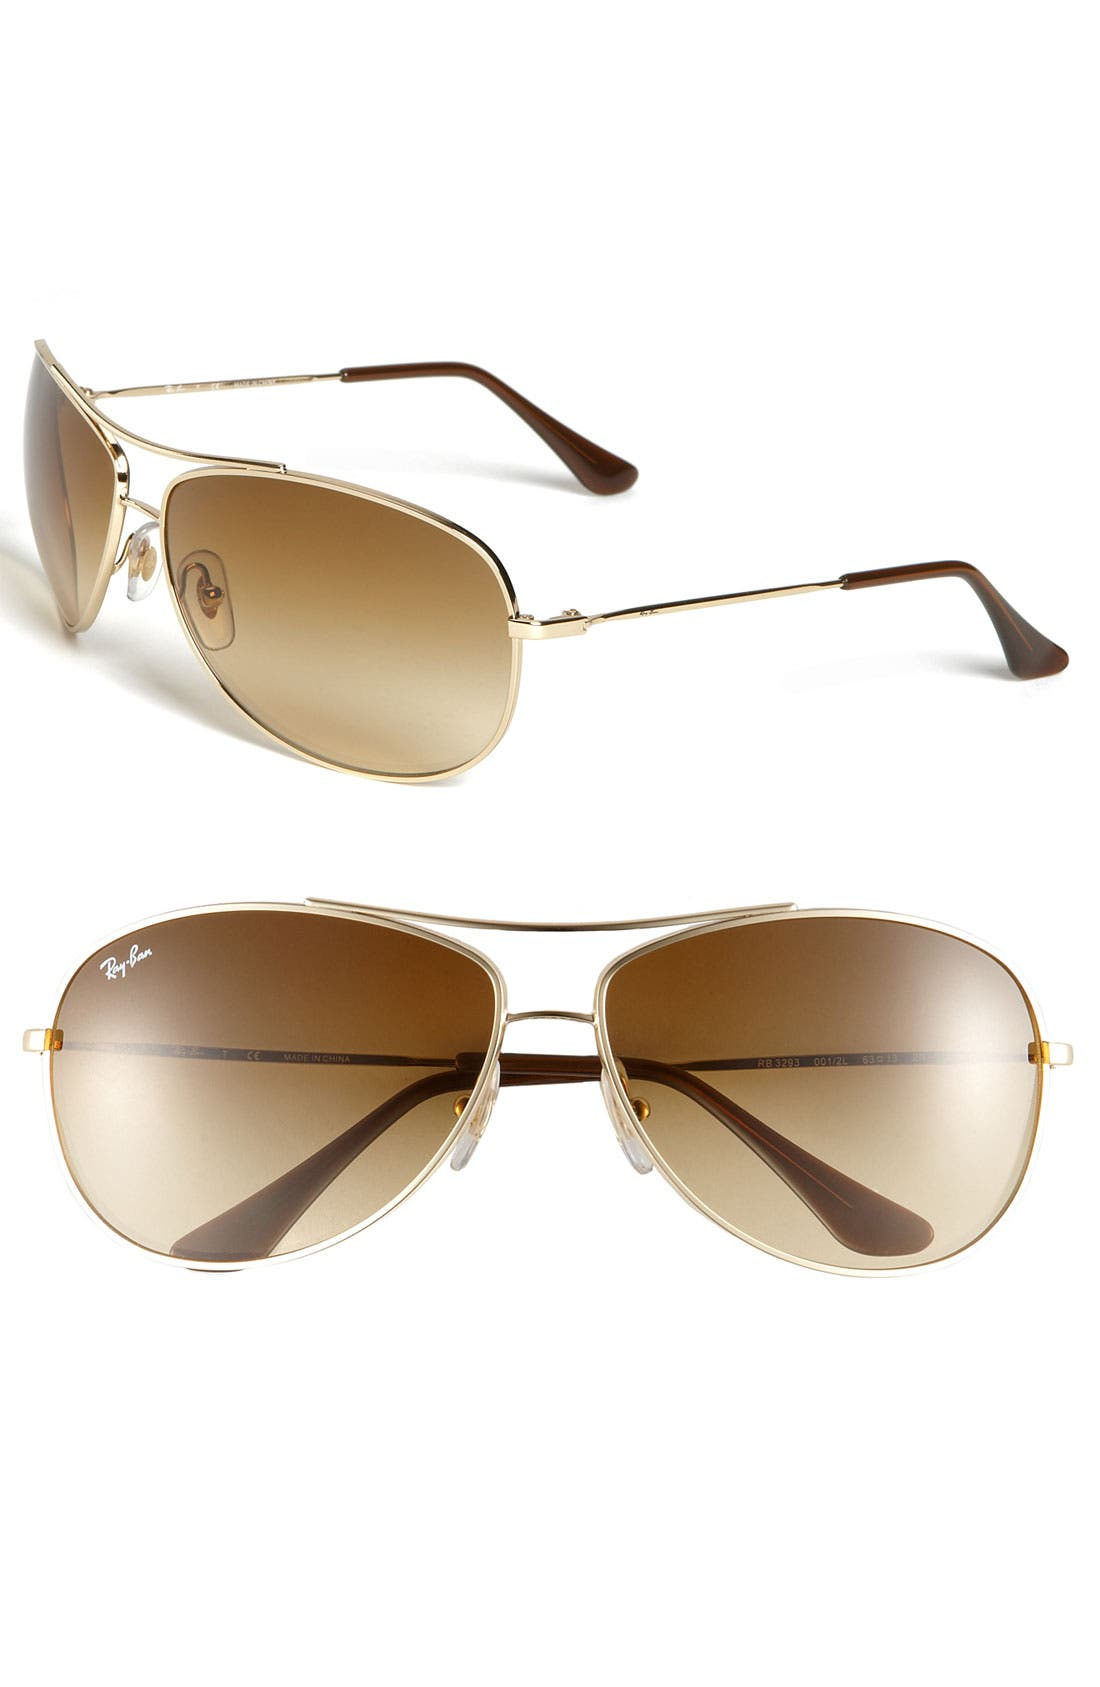 Main Image - Ray-Ban 'Bubble Wrap' Metal Aviator Sunglasses